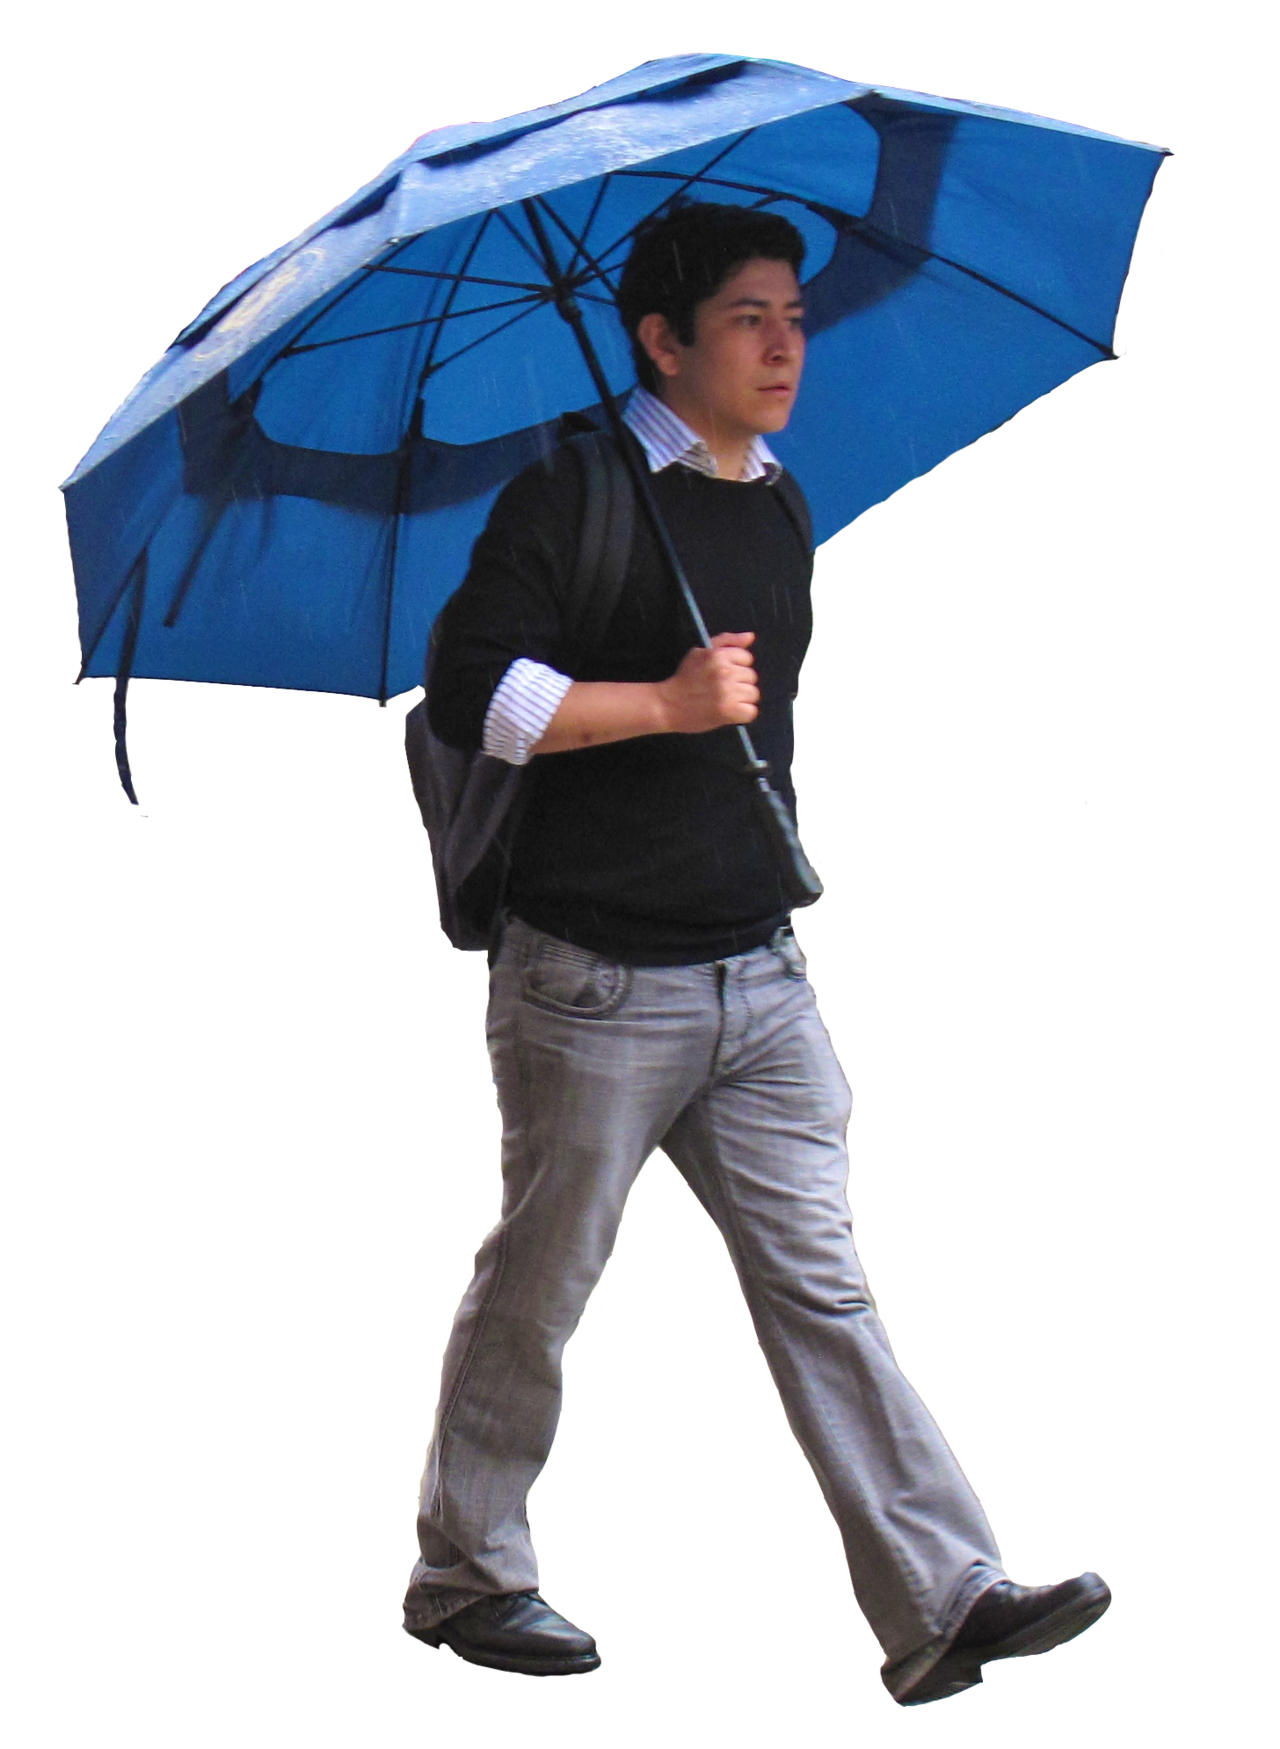 Man legs png. Walking with umbrella photoshop